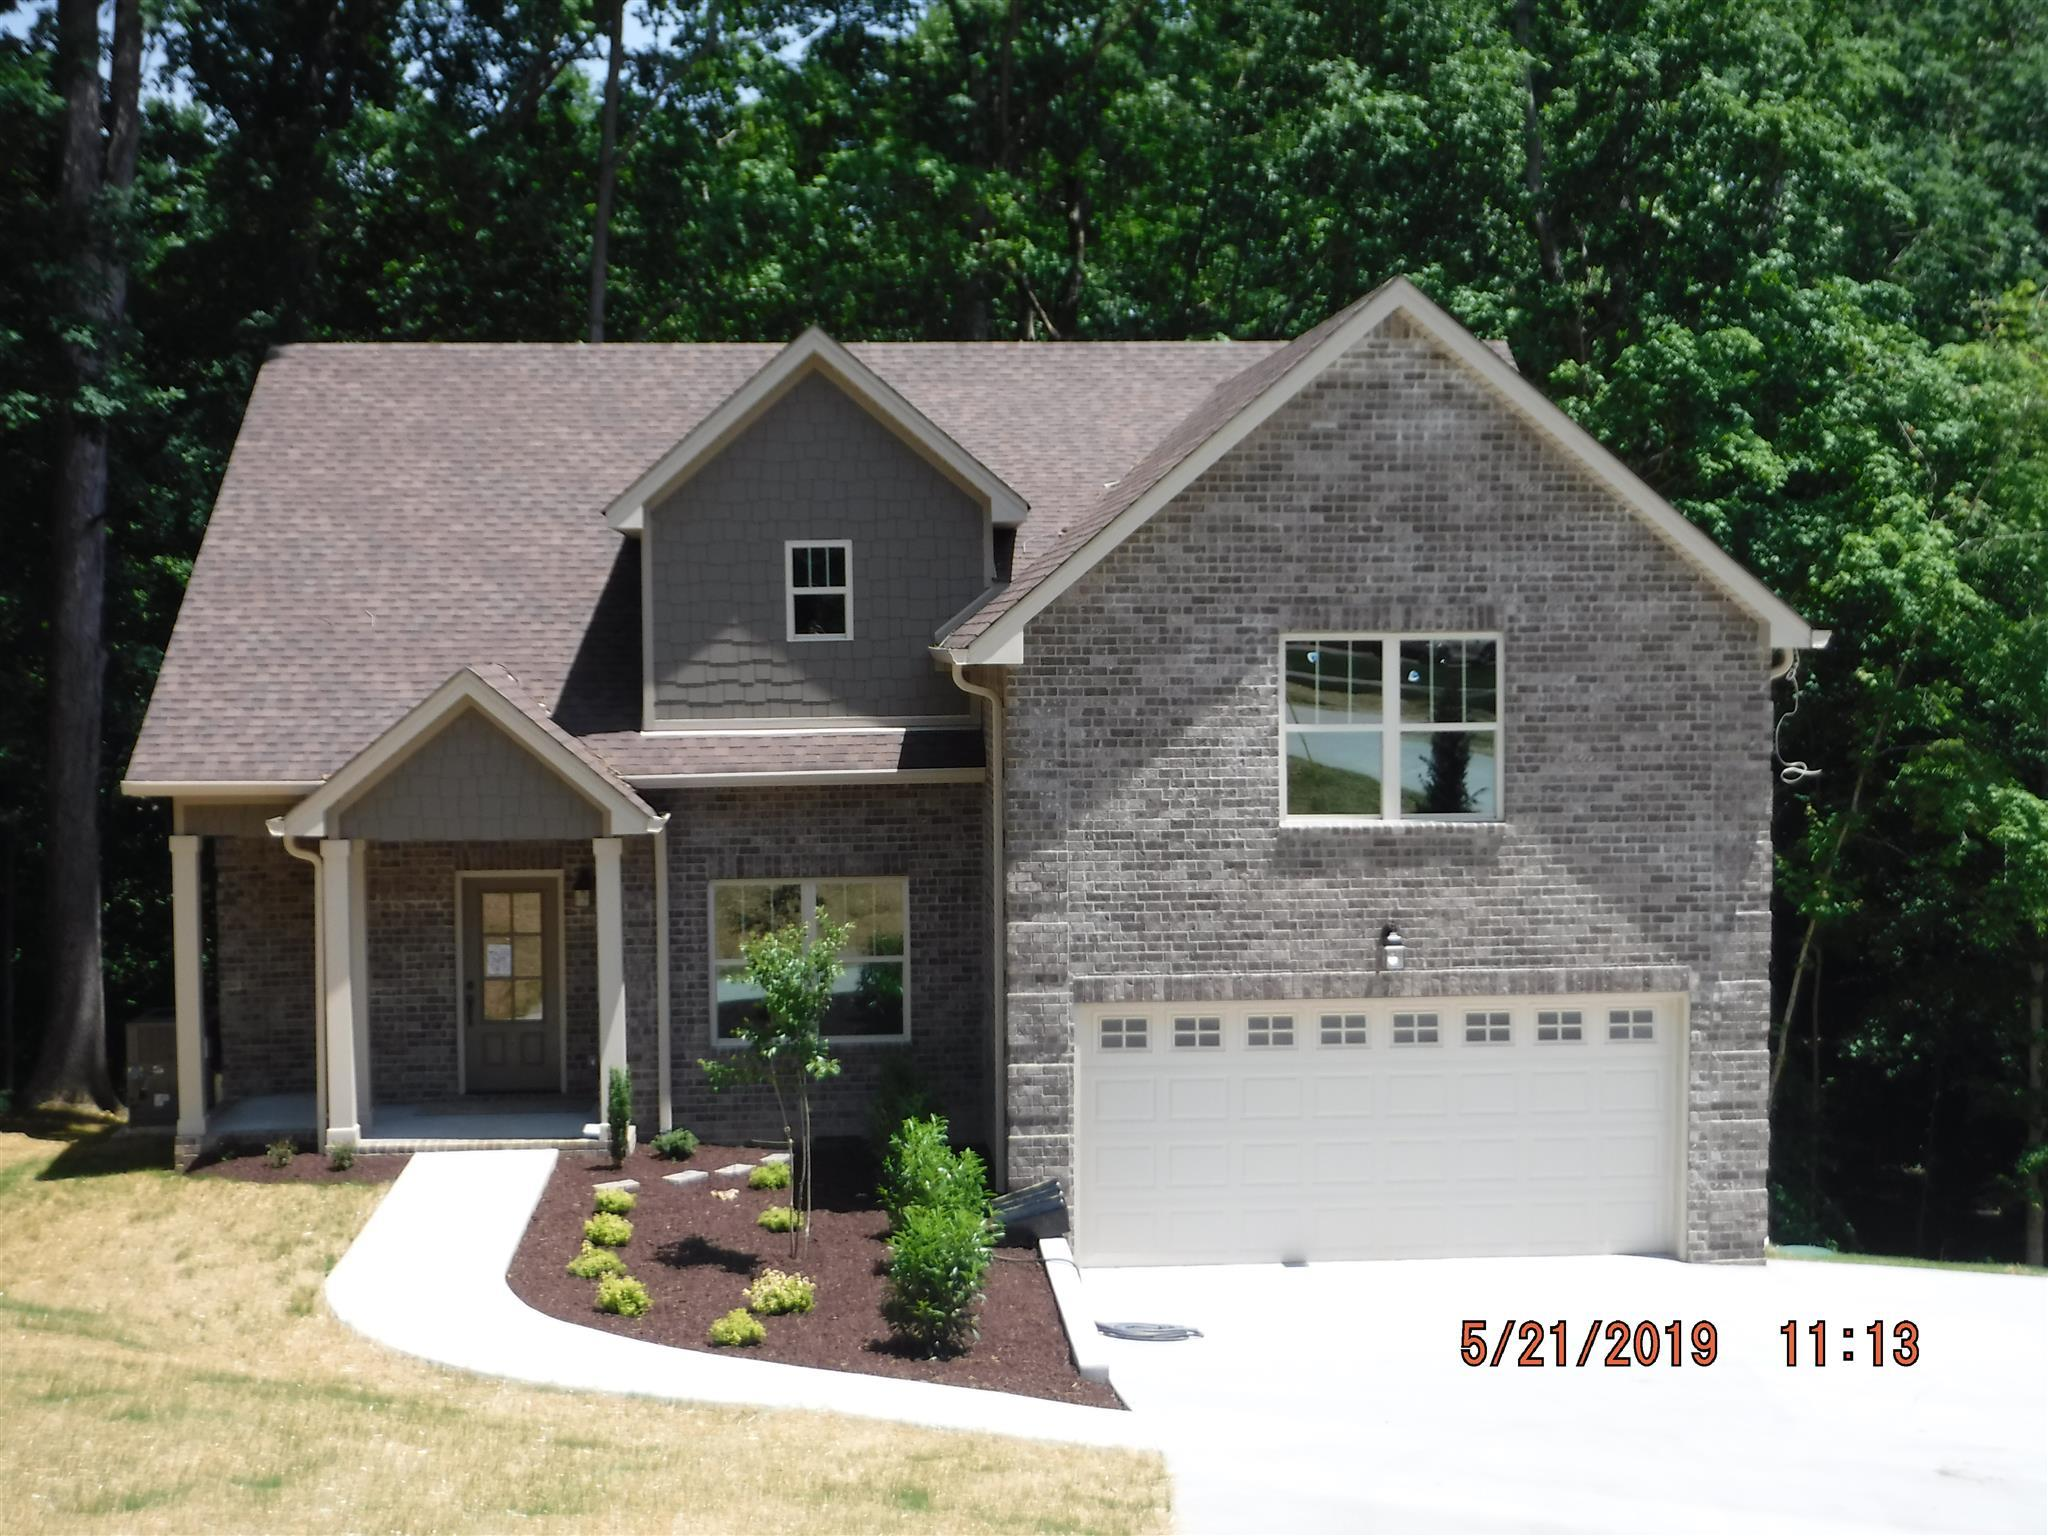 $349,900 - 4Br/3Ba -  for Sale in Dogwood Trace, Greenbrier